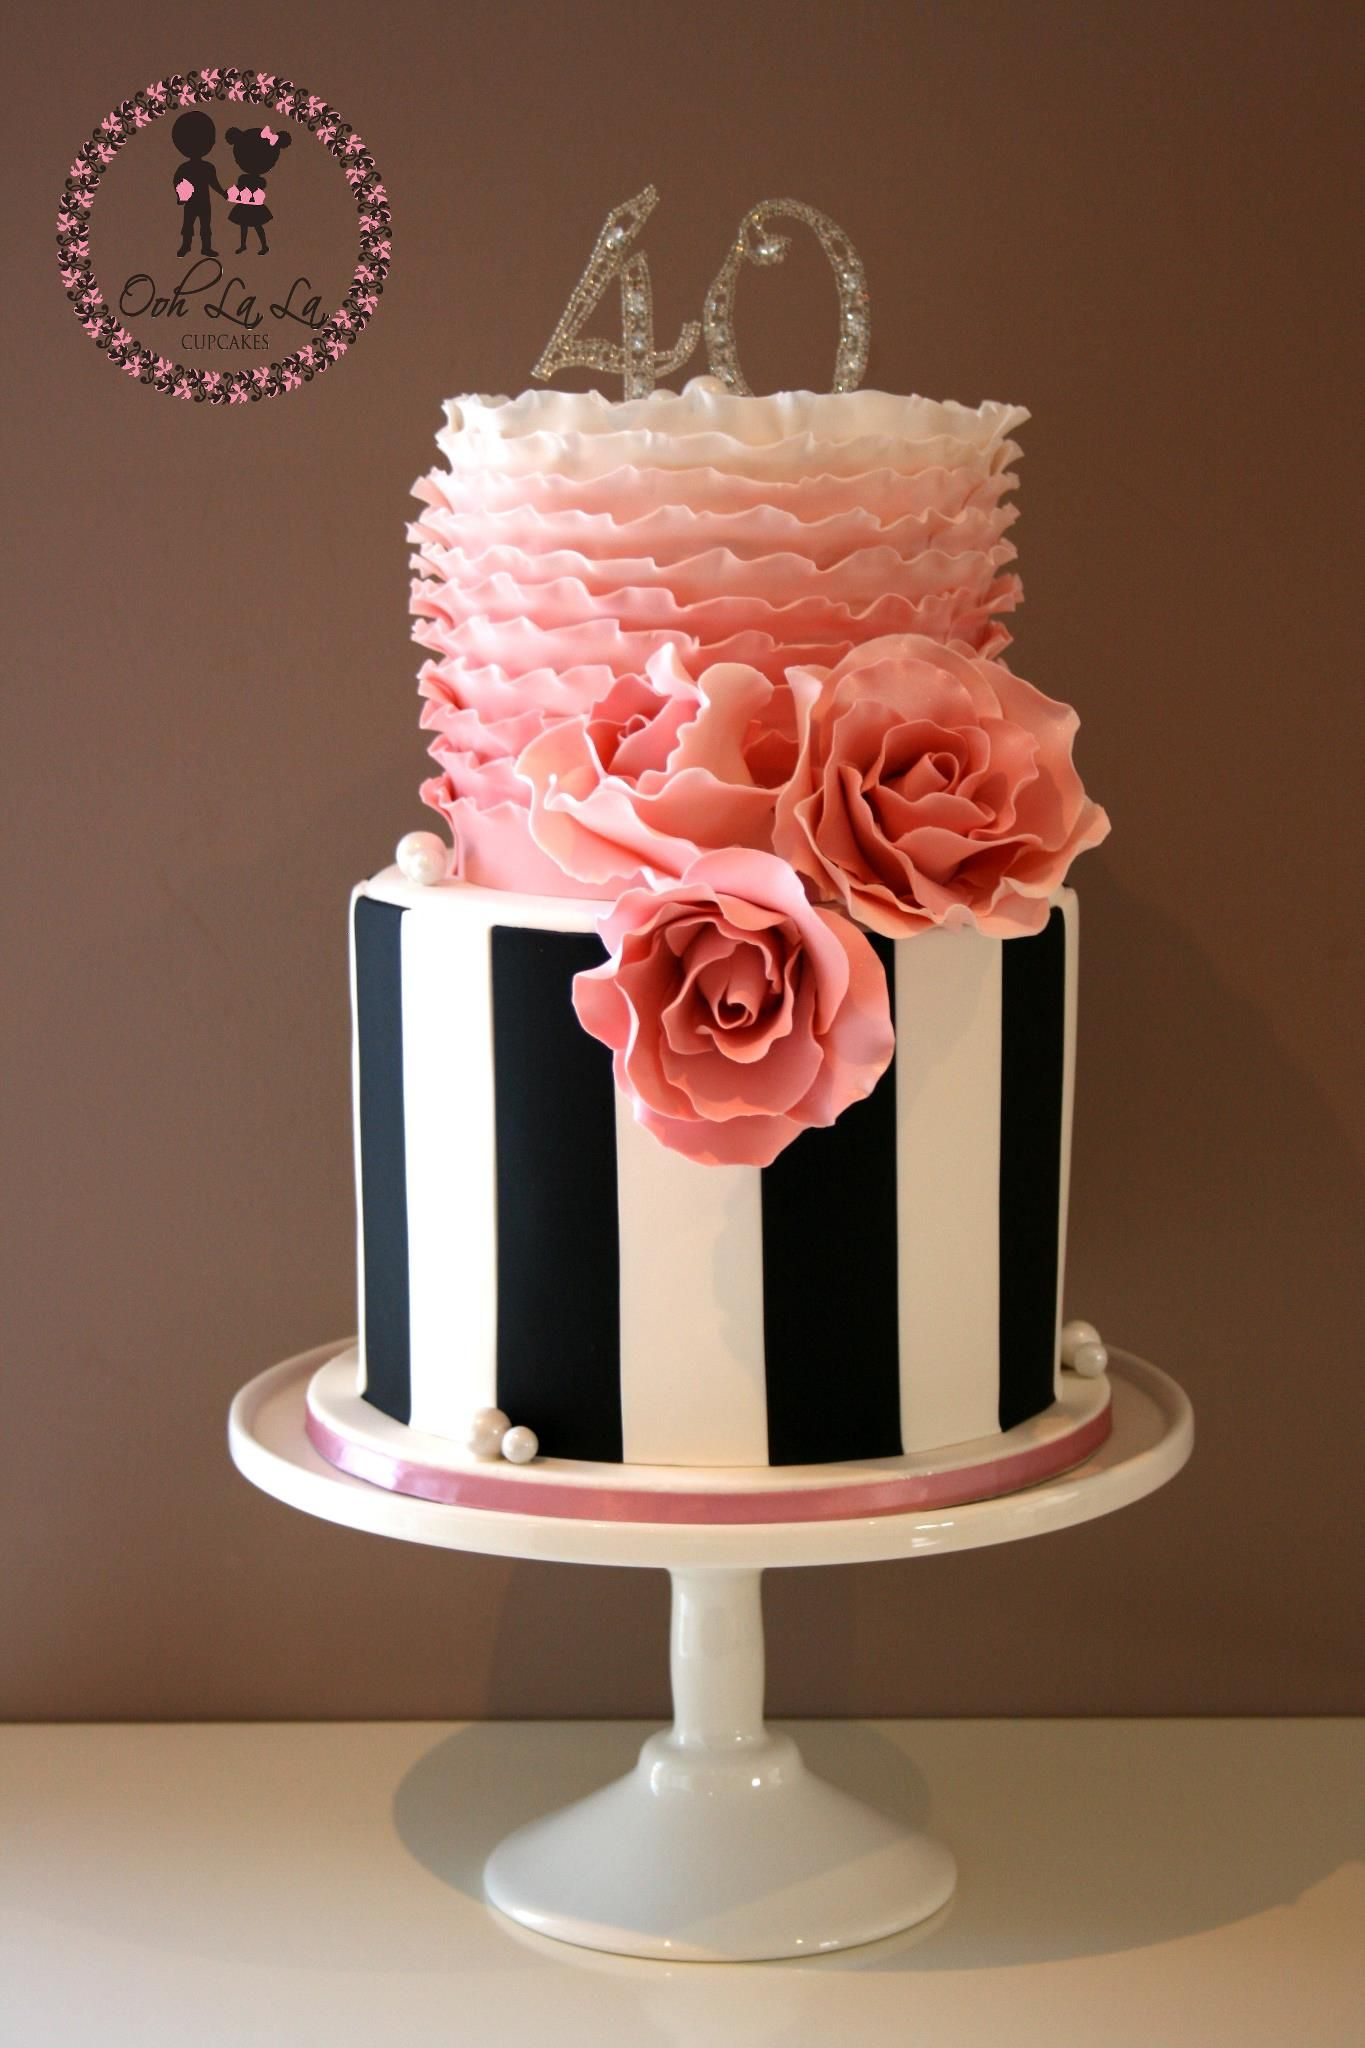 Black And White With Pink Cake Cake Decorating Pinterest Cake